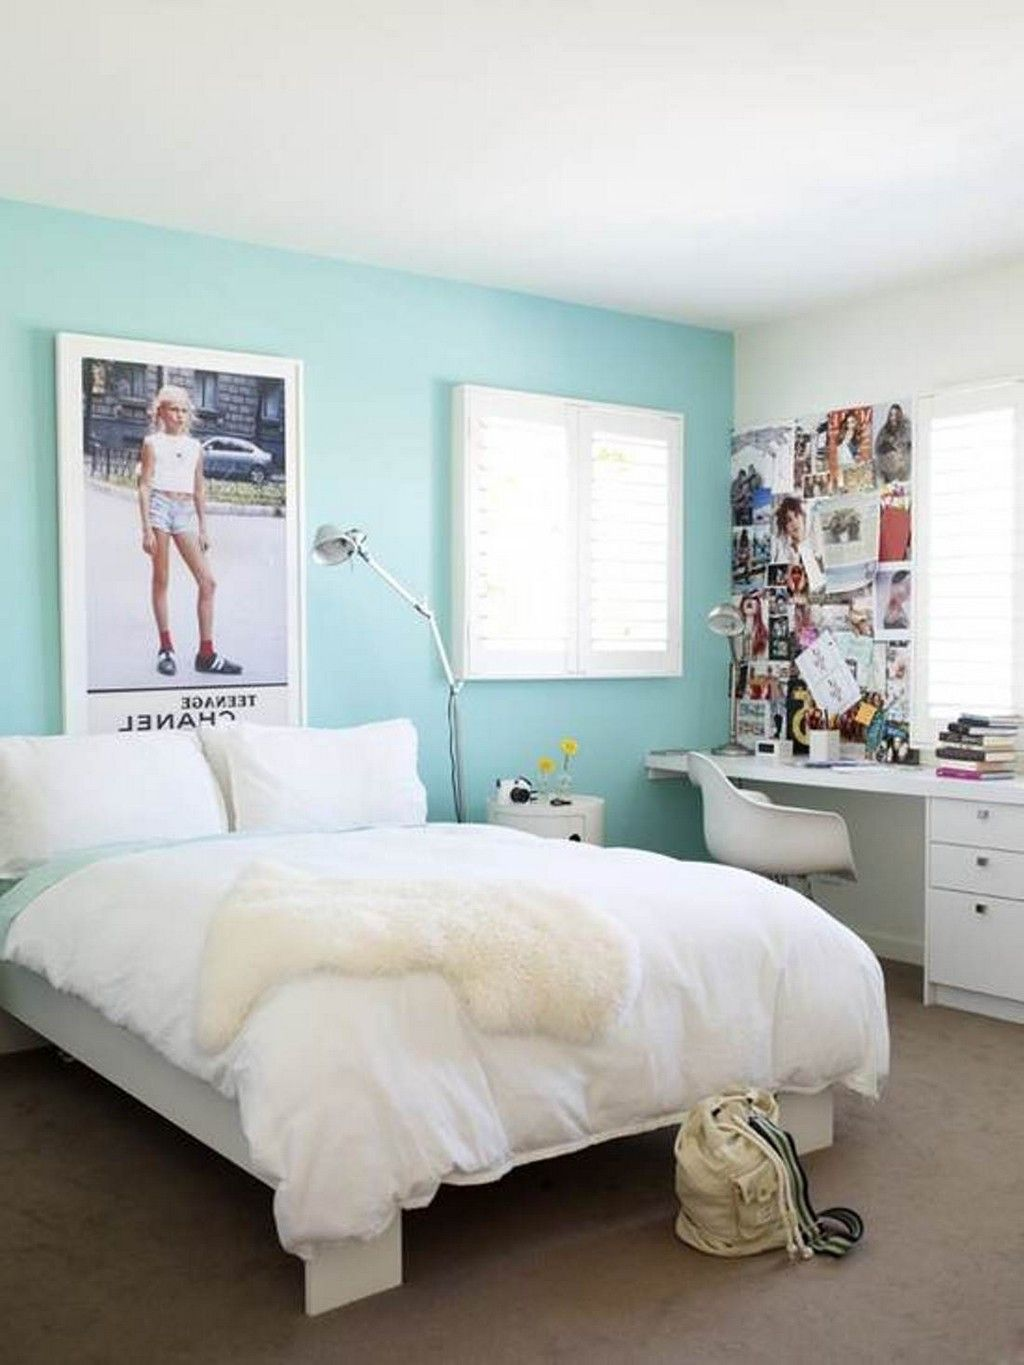 Blue bedroom design for teenagers - Bedroom Calming Blue Paint Colors For Small Teen Bedroom Ideas